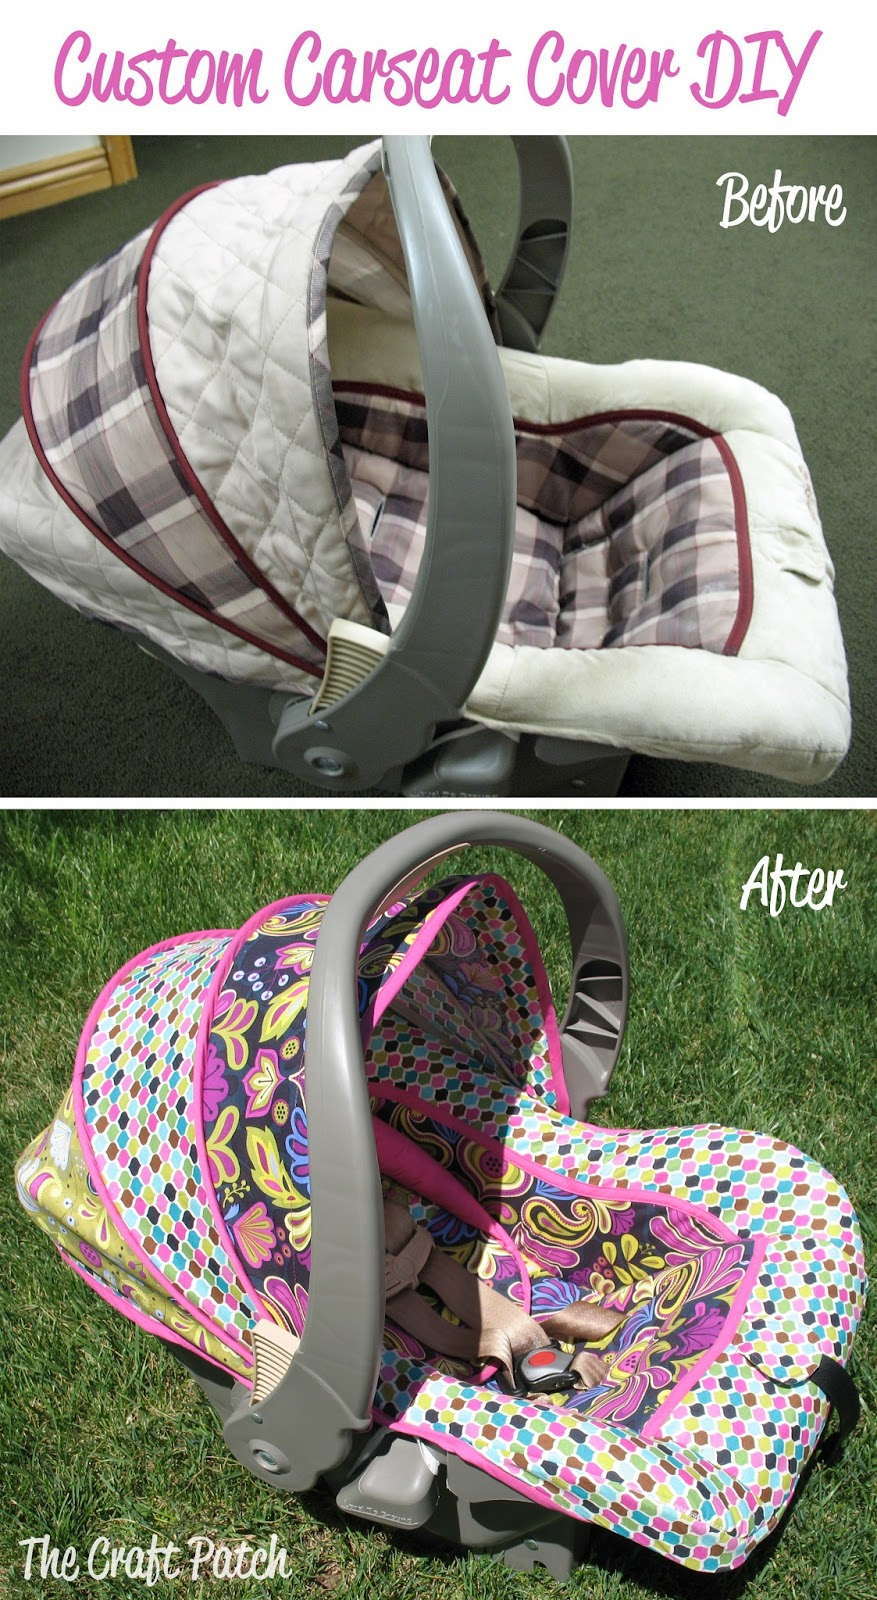 The Craft Patch: Custom Car Seat Cover DIY